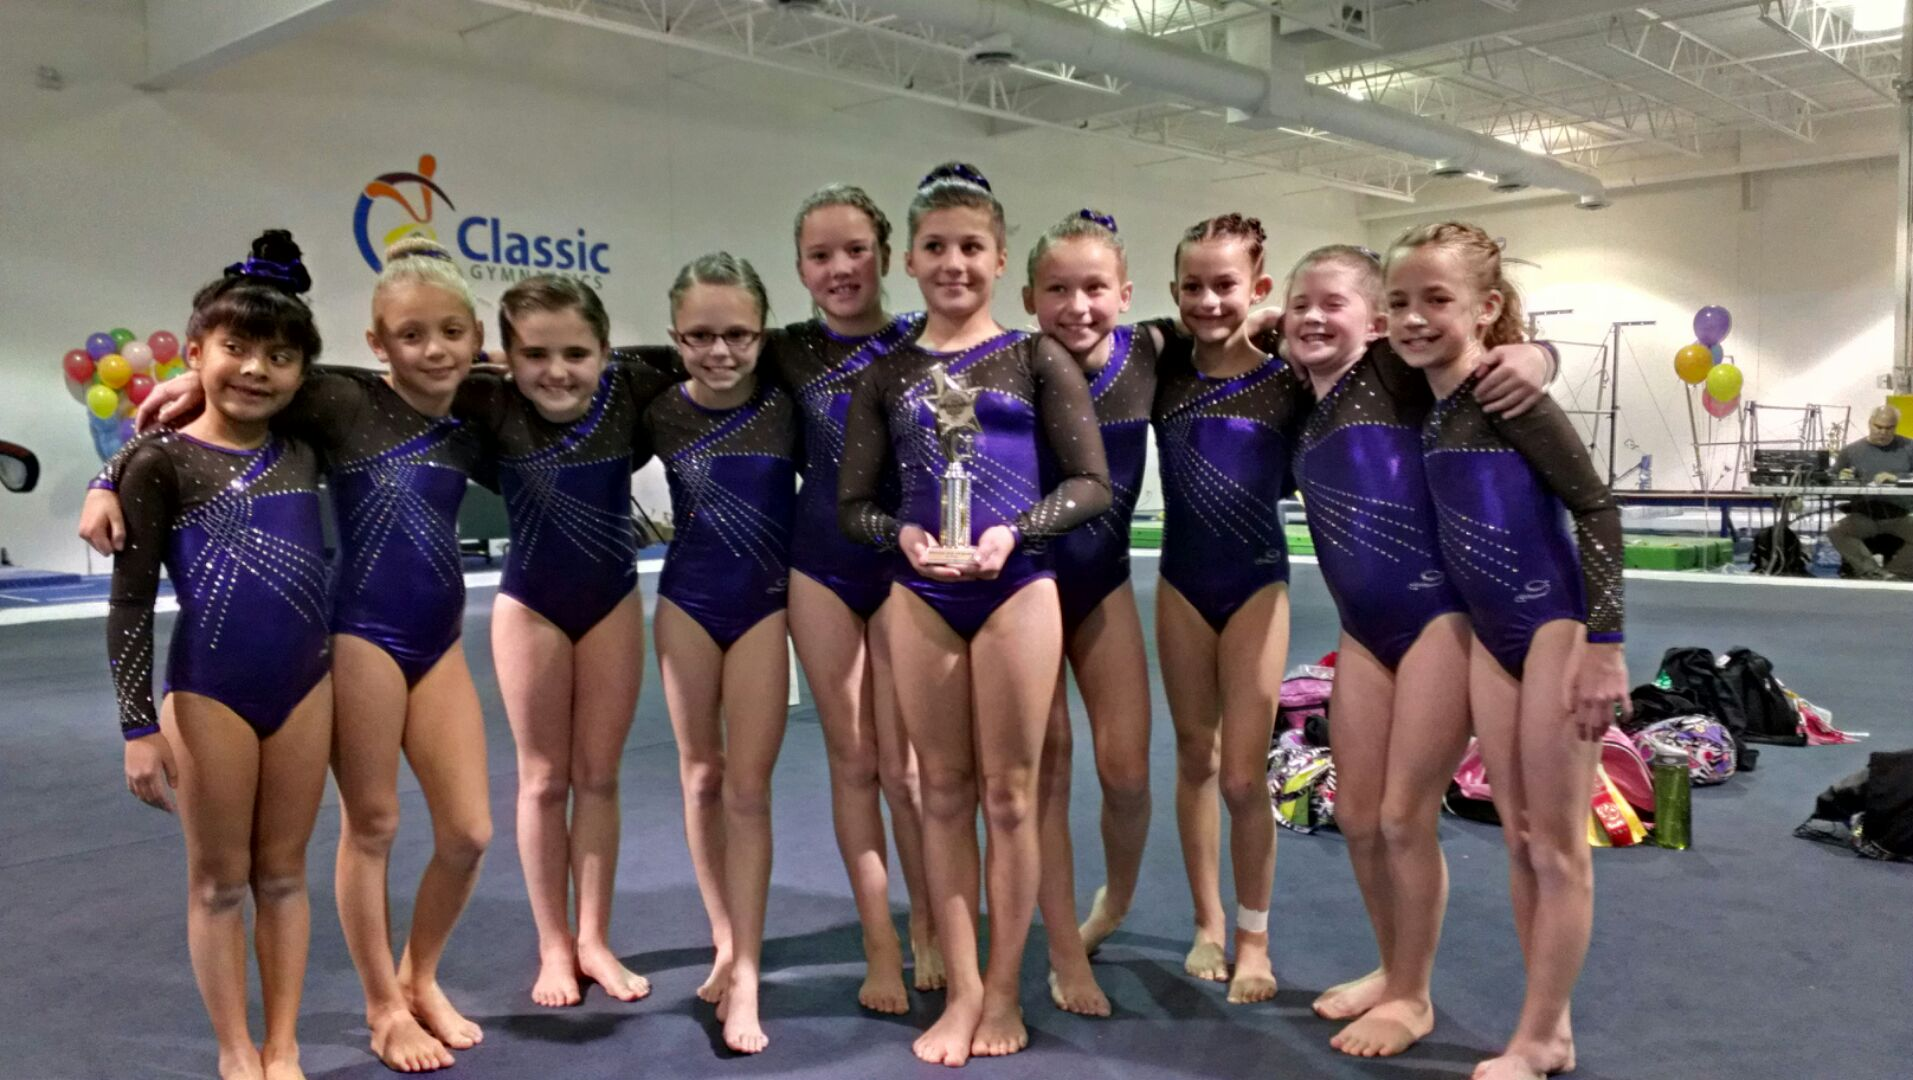 twistars gymnastics meet 2012 movie